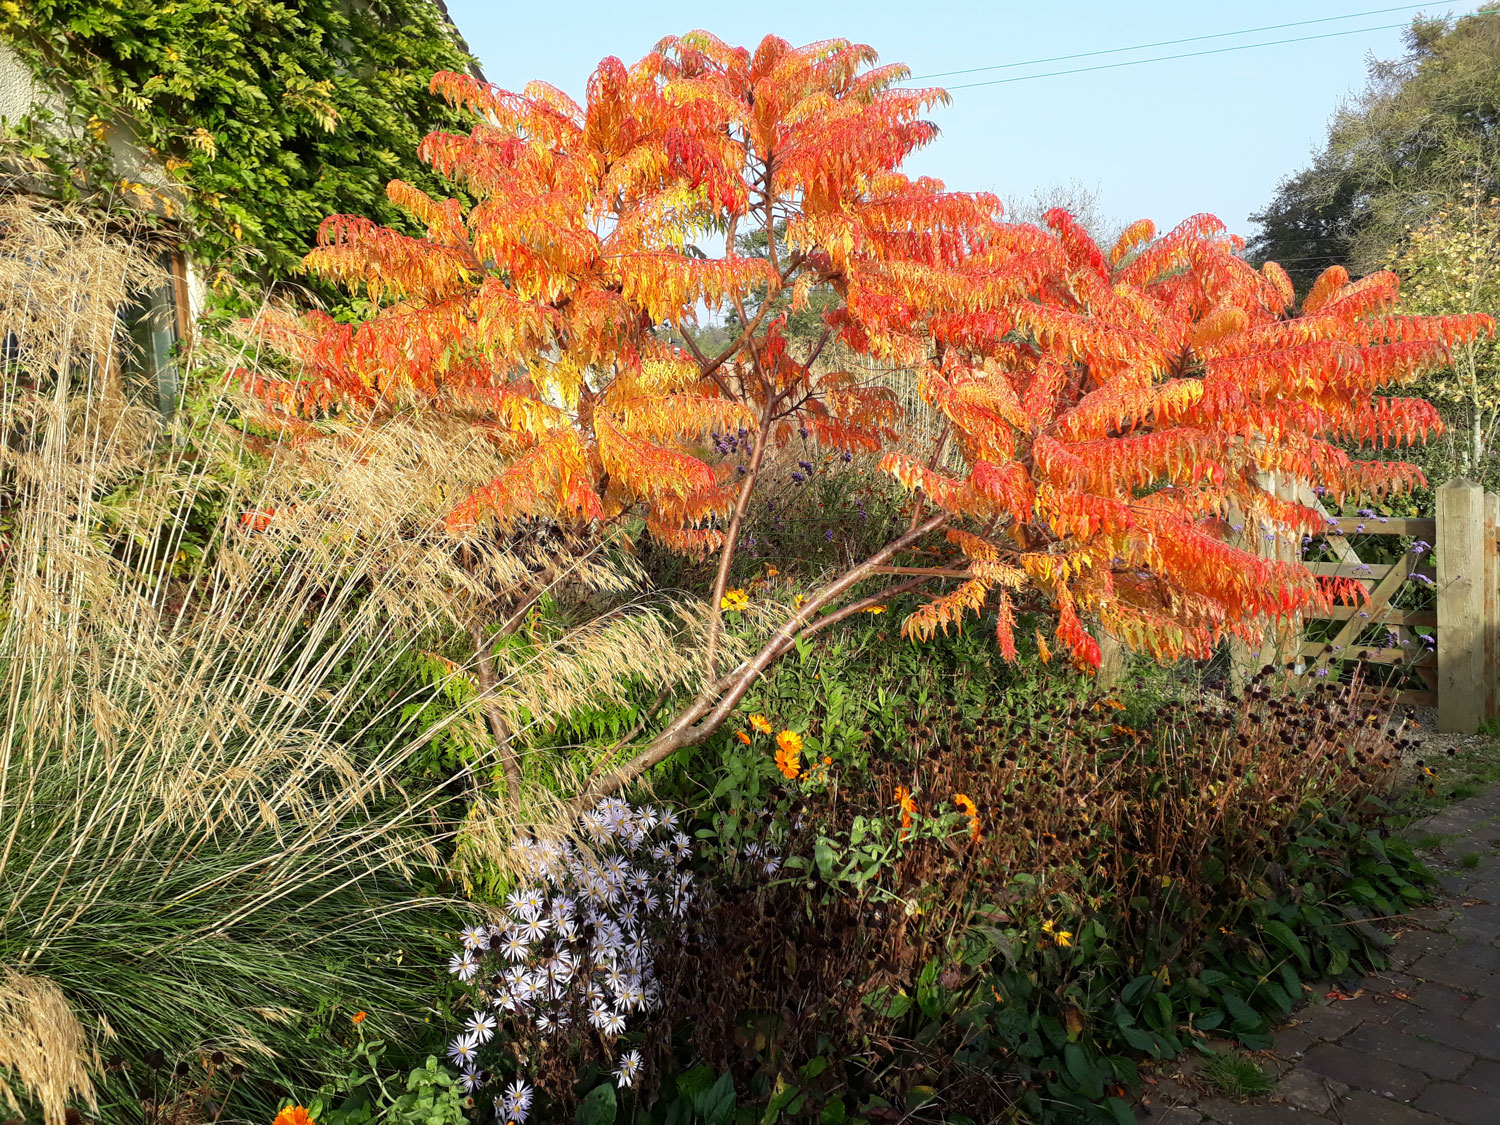 Garden featuring large sumac in autumn colours in foreground